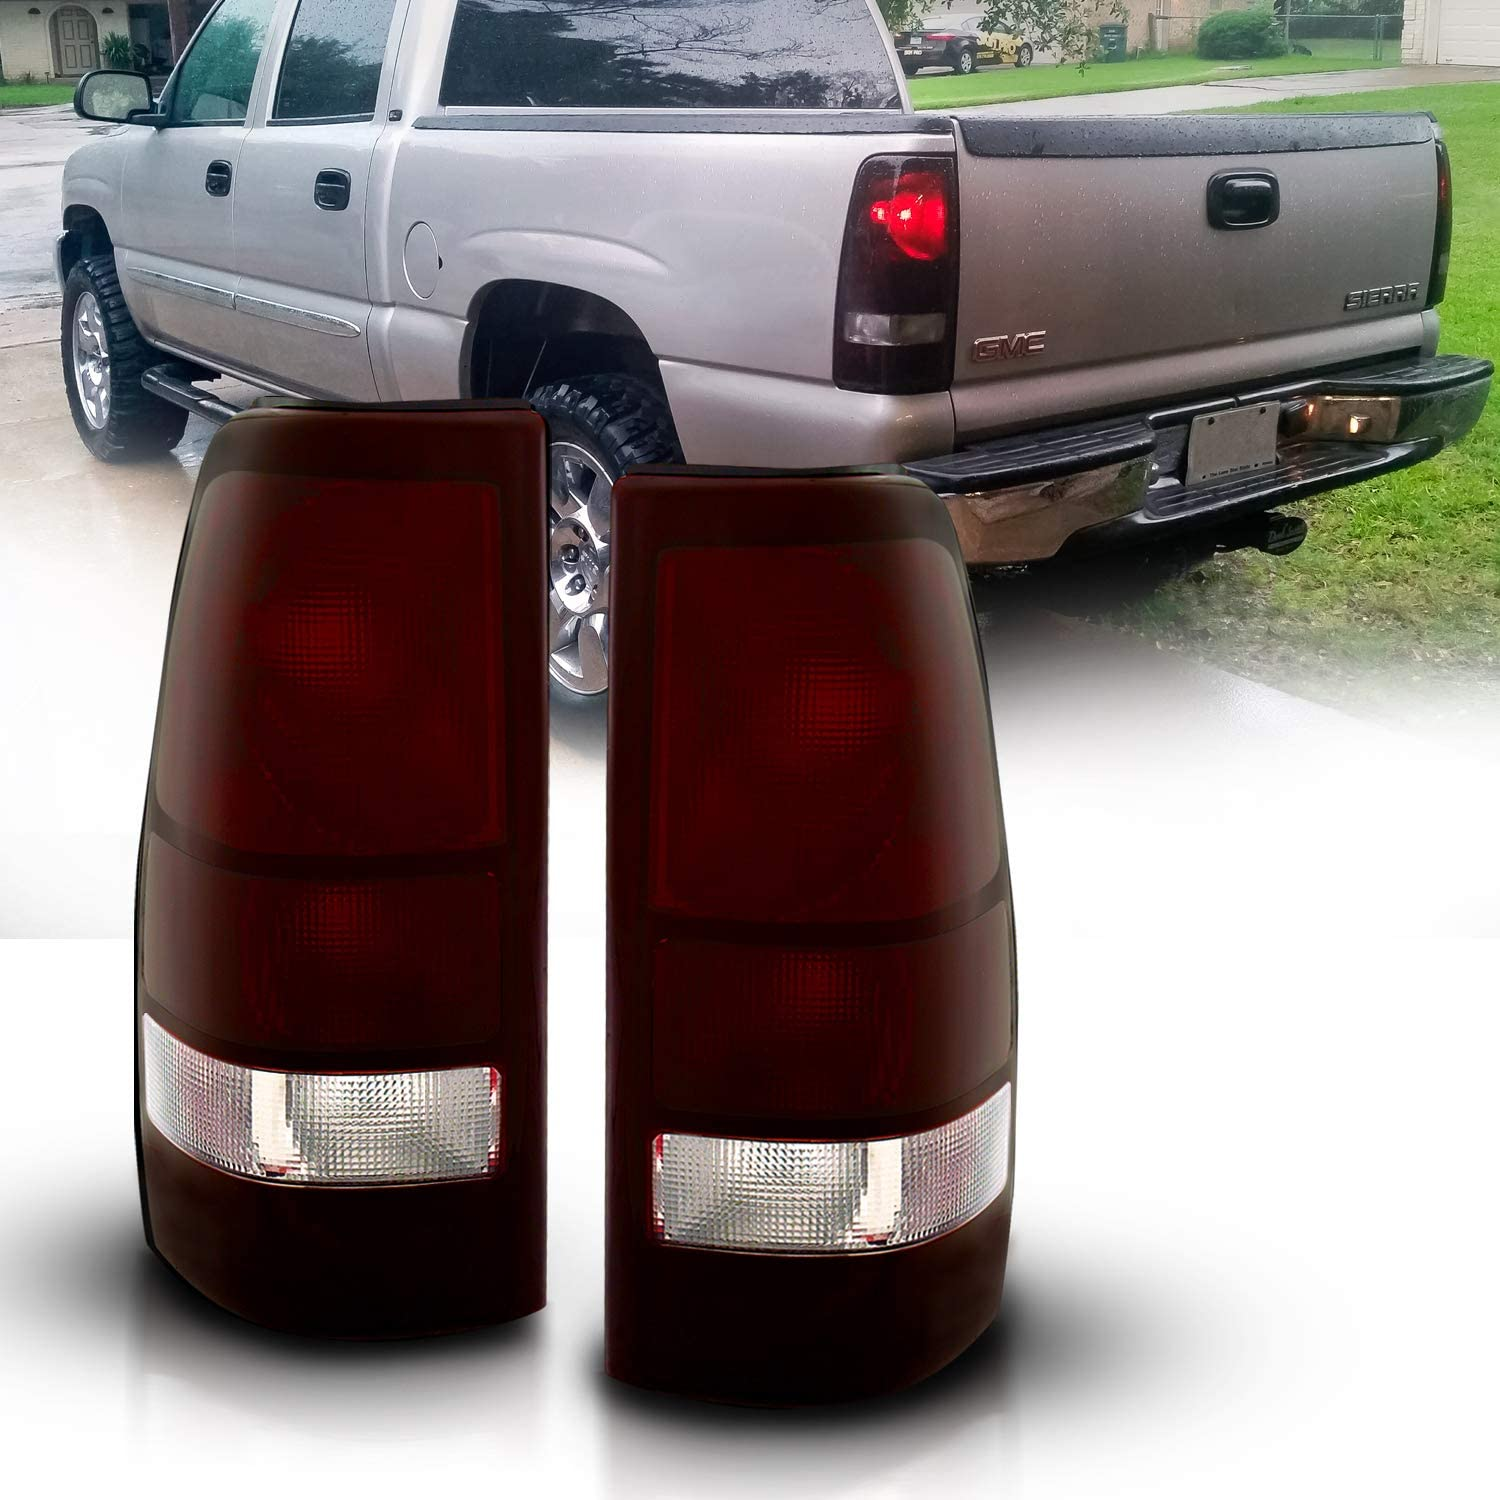 AmeriLite Red Smoke Replacement Rear Brake Tail Lights Set for Chevy Silverado Truck w//Bulb and Harness